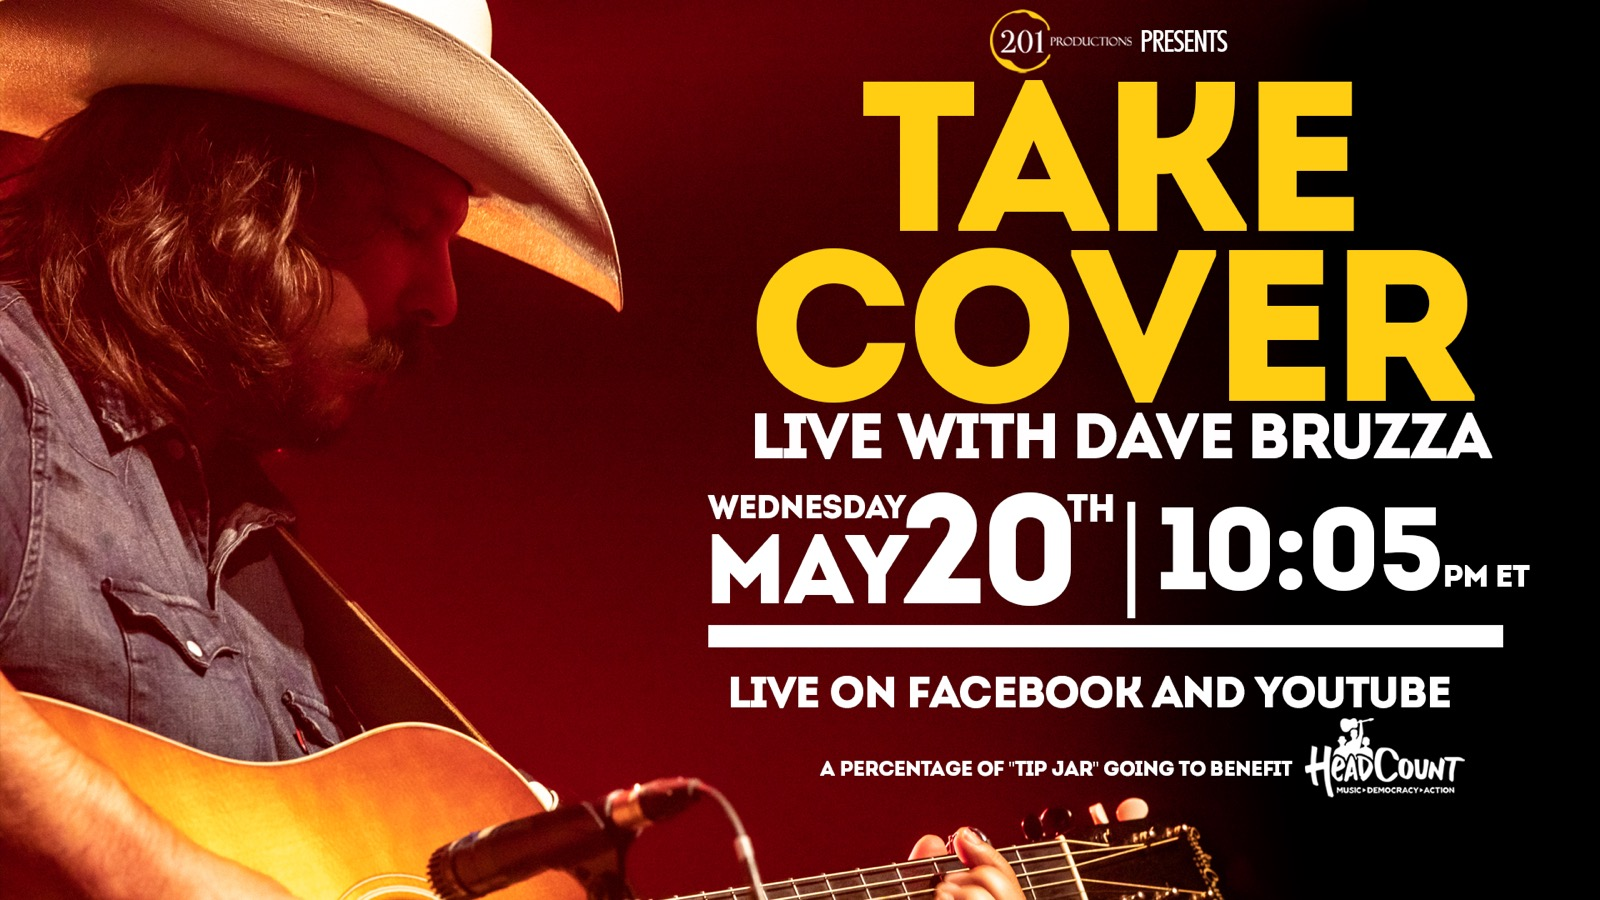 Dave Bruzza Goes Live with Take Cover